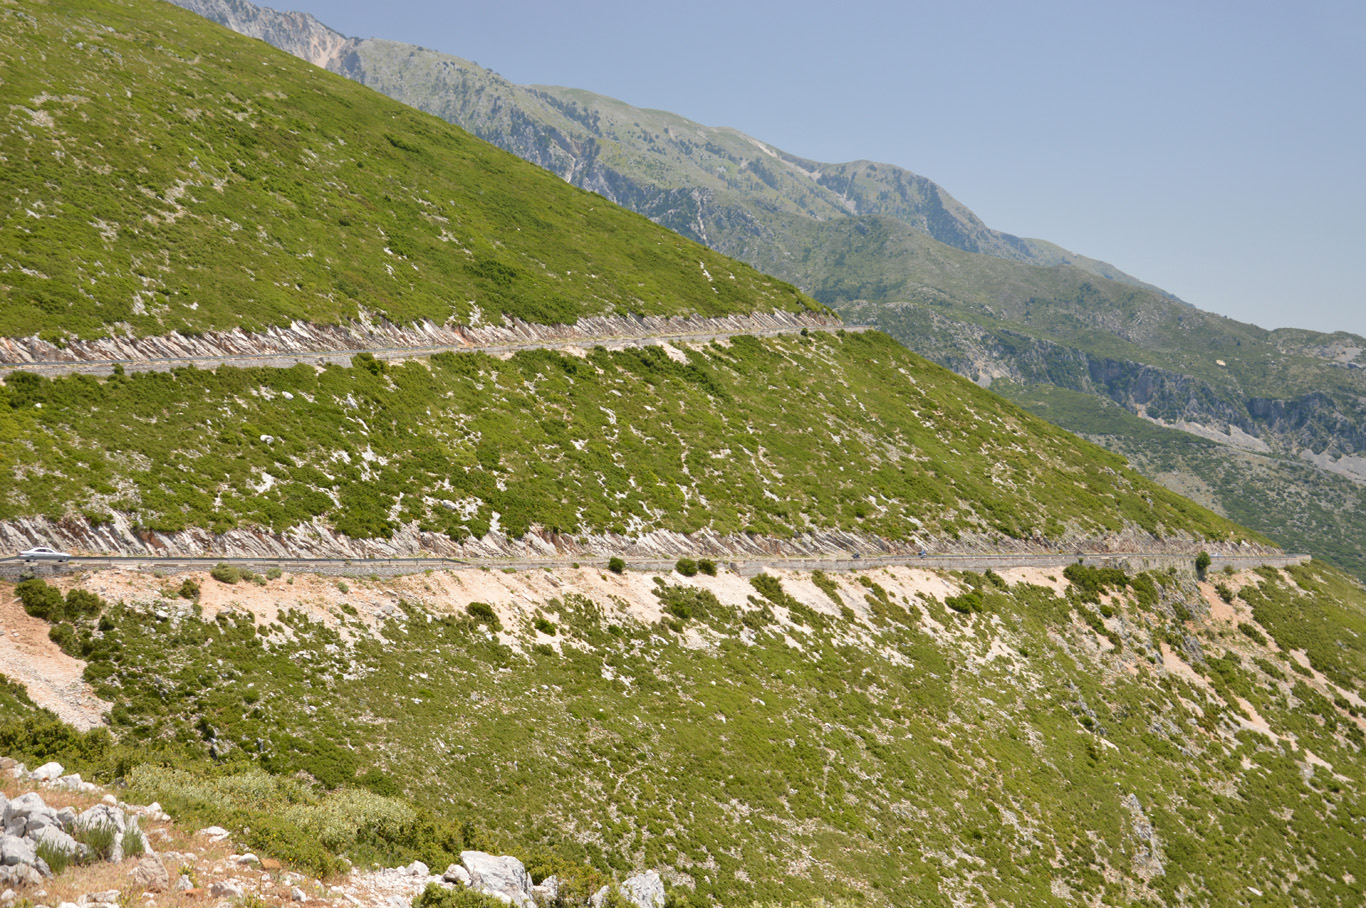 Llogara Pass - road carved into the slope